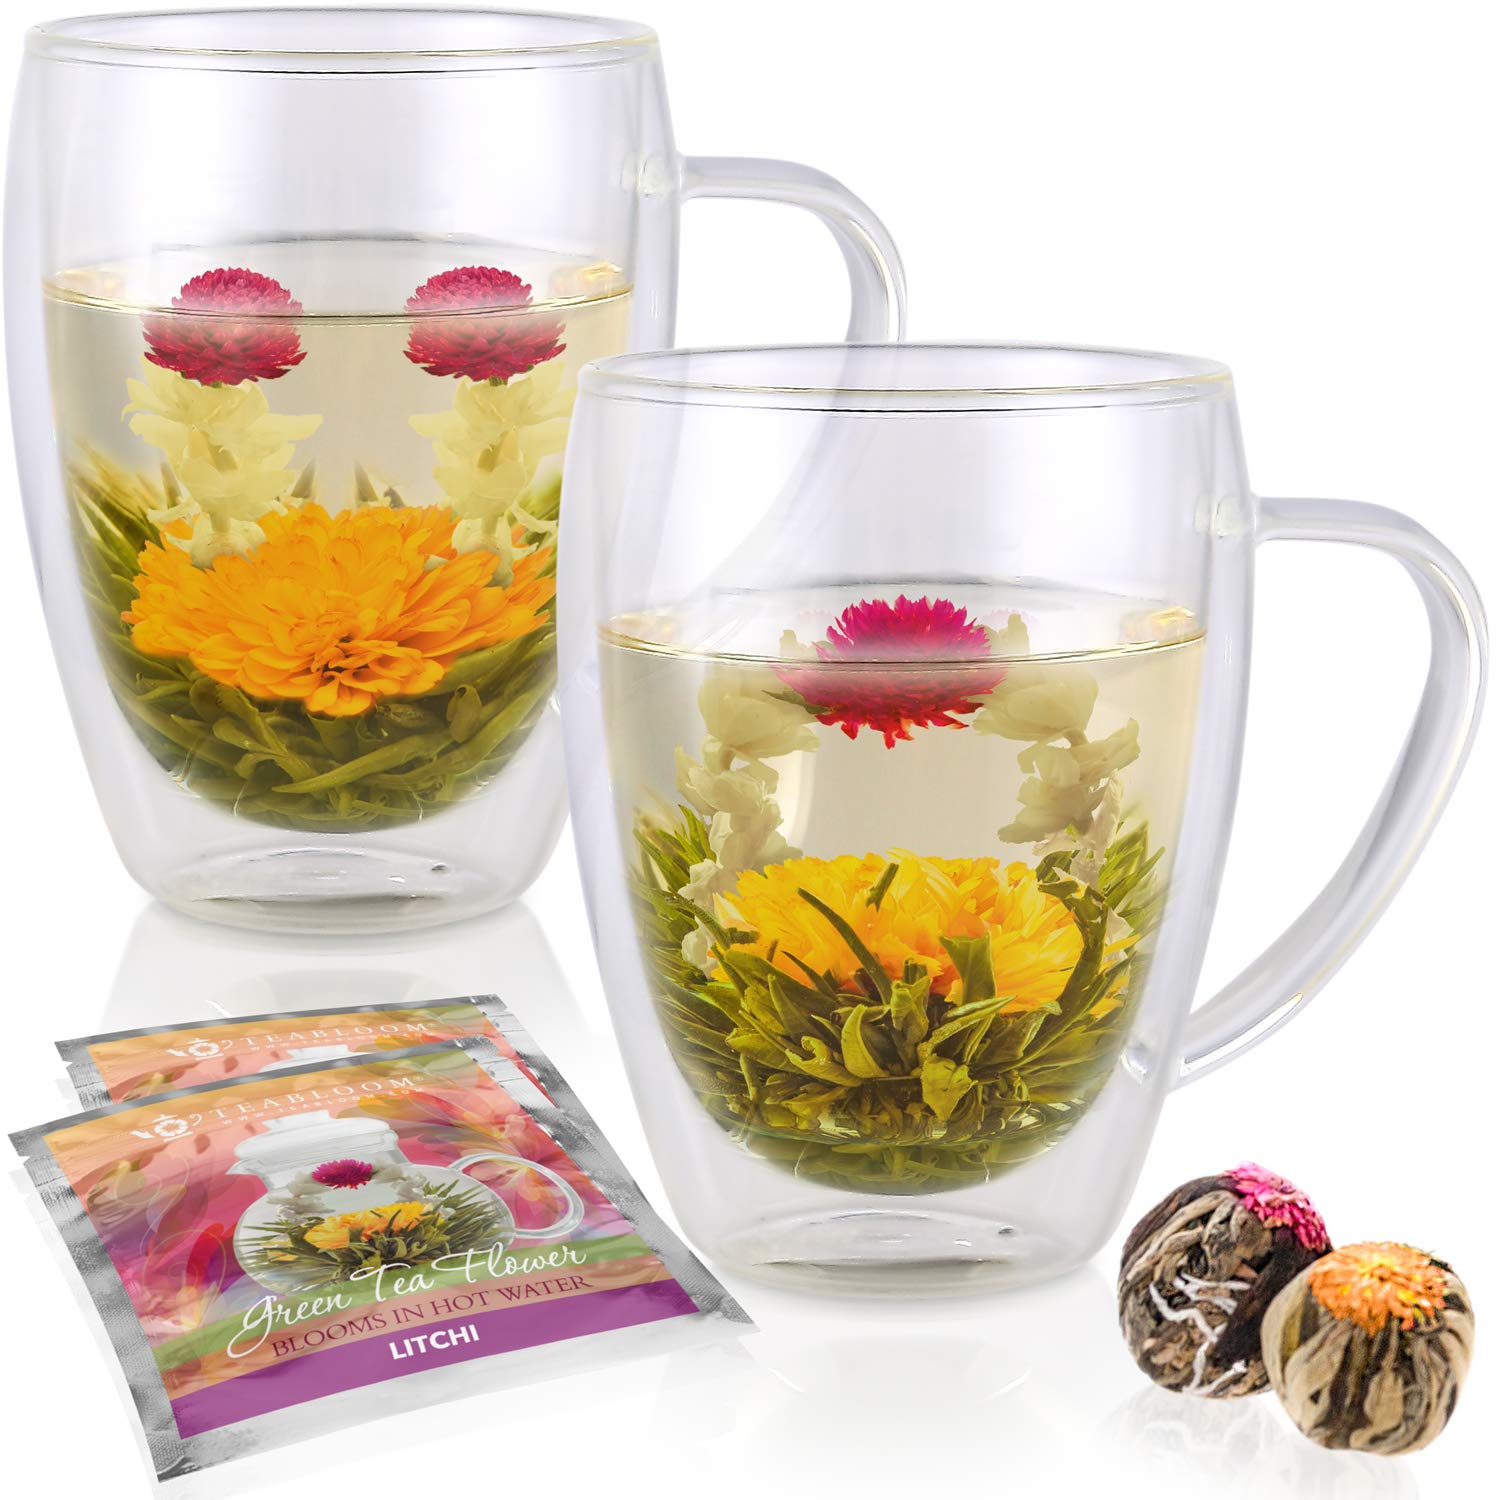 Teabloom Double Walled Glass Mugs & Flowering Tea Gift Set (Set of 2 Mugs + 2 Tea Flowers) - 12 oz Borosilicate Glasses + Blooming Teas - Great Gift for Anniversary, Valentine, Birthday, Holiday